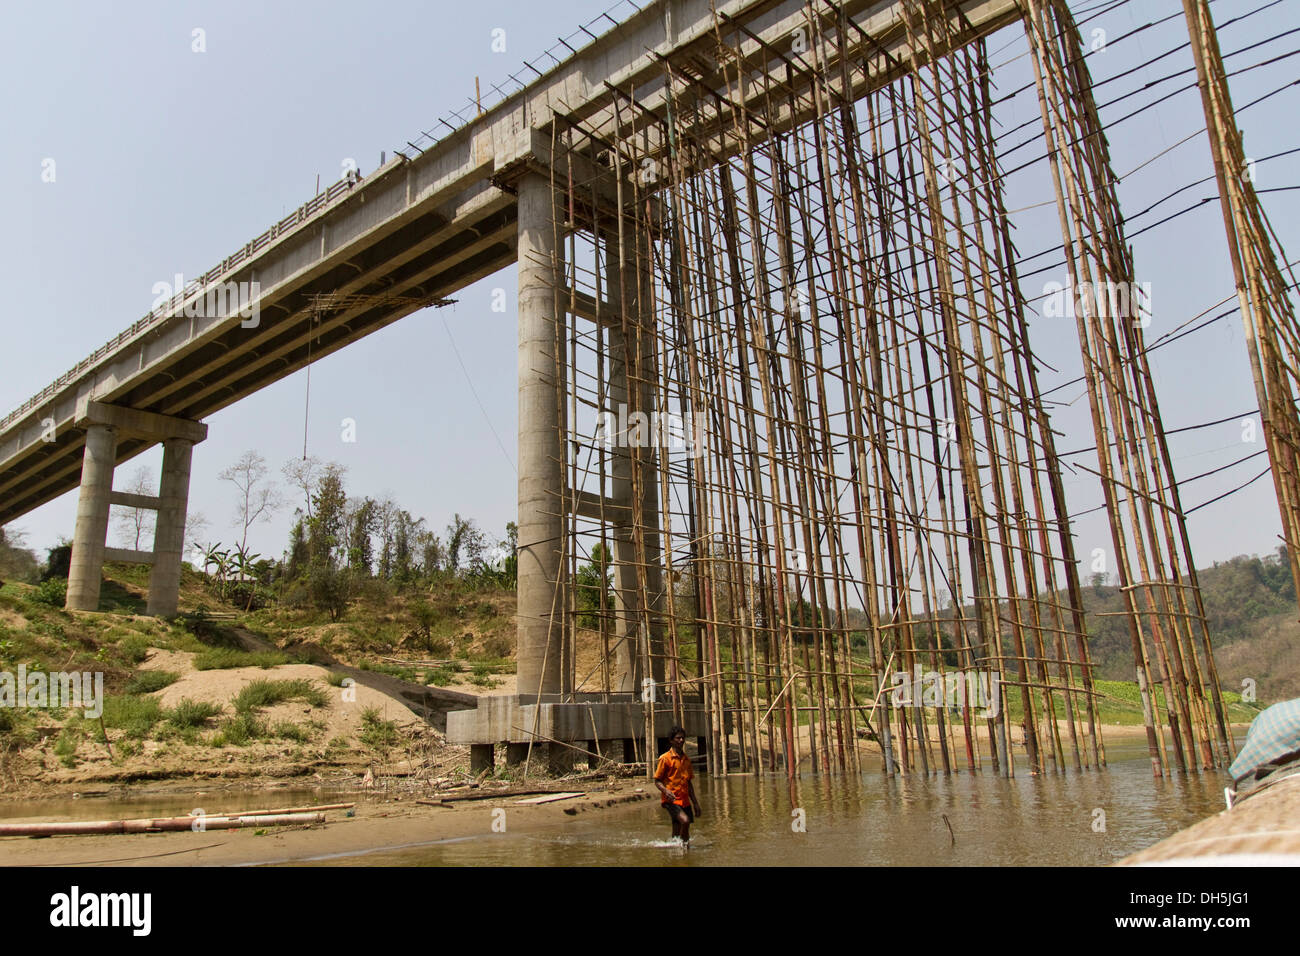 Scaffolding made of bamboo poles for the construction of a new bridge over the River Shangu, Ruma Bazar, Chittagong Hill Tracts - Stock Image